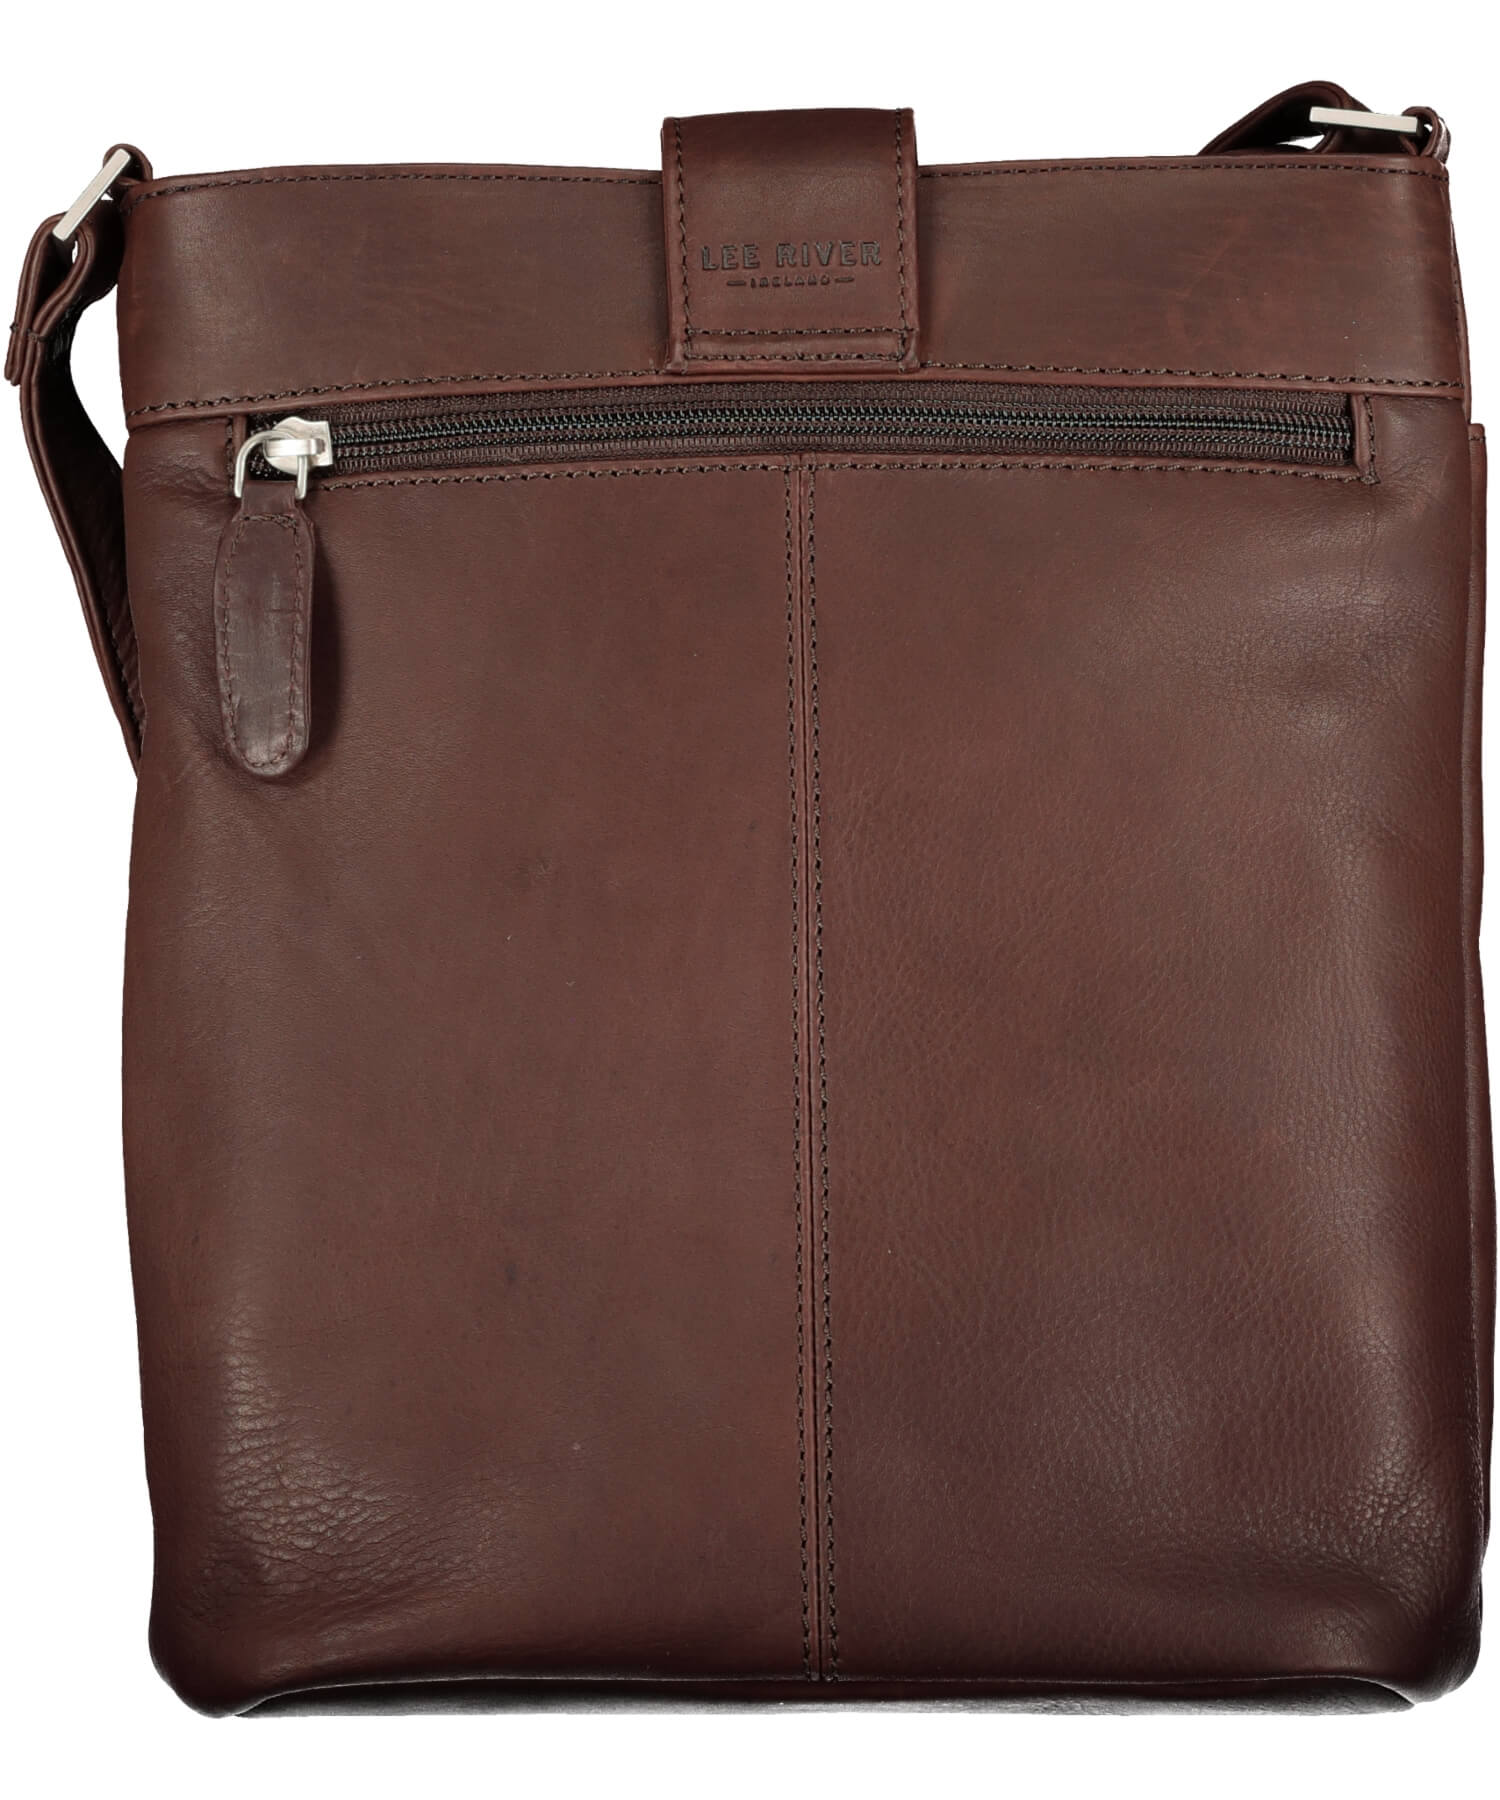 Torc Bag - Brown - [Lee River] - Bags, Purses & Wallets - Irish Gifts